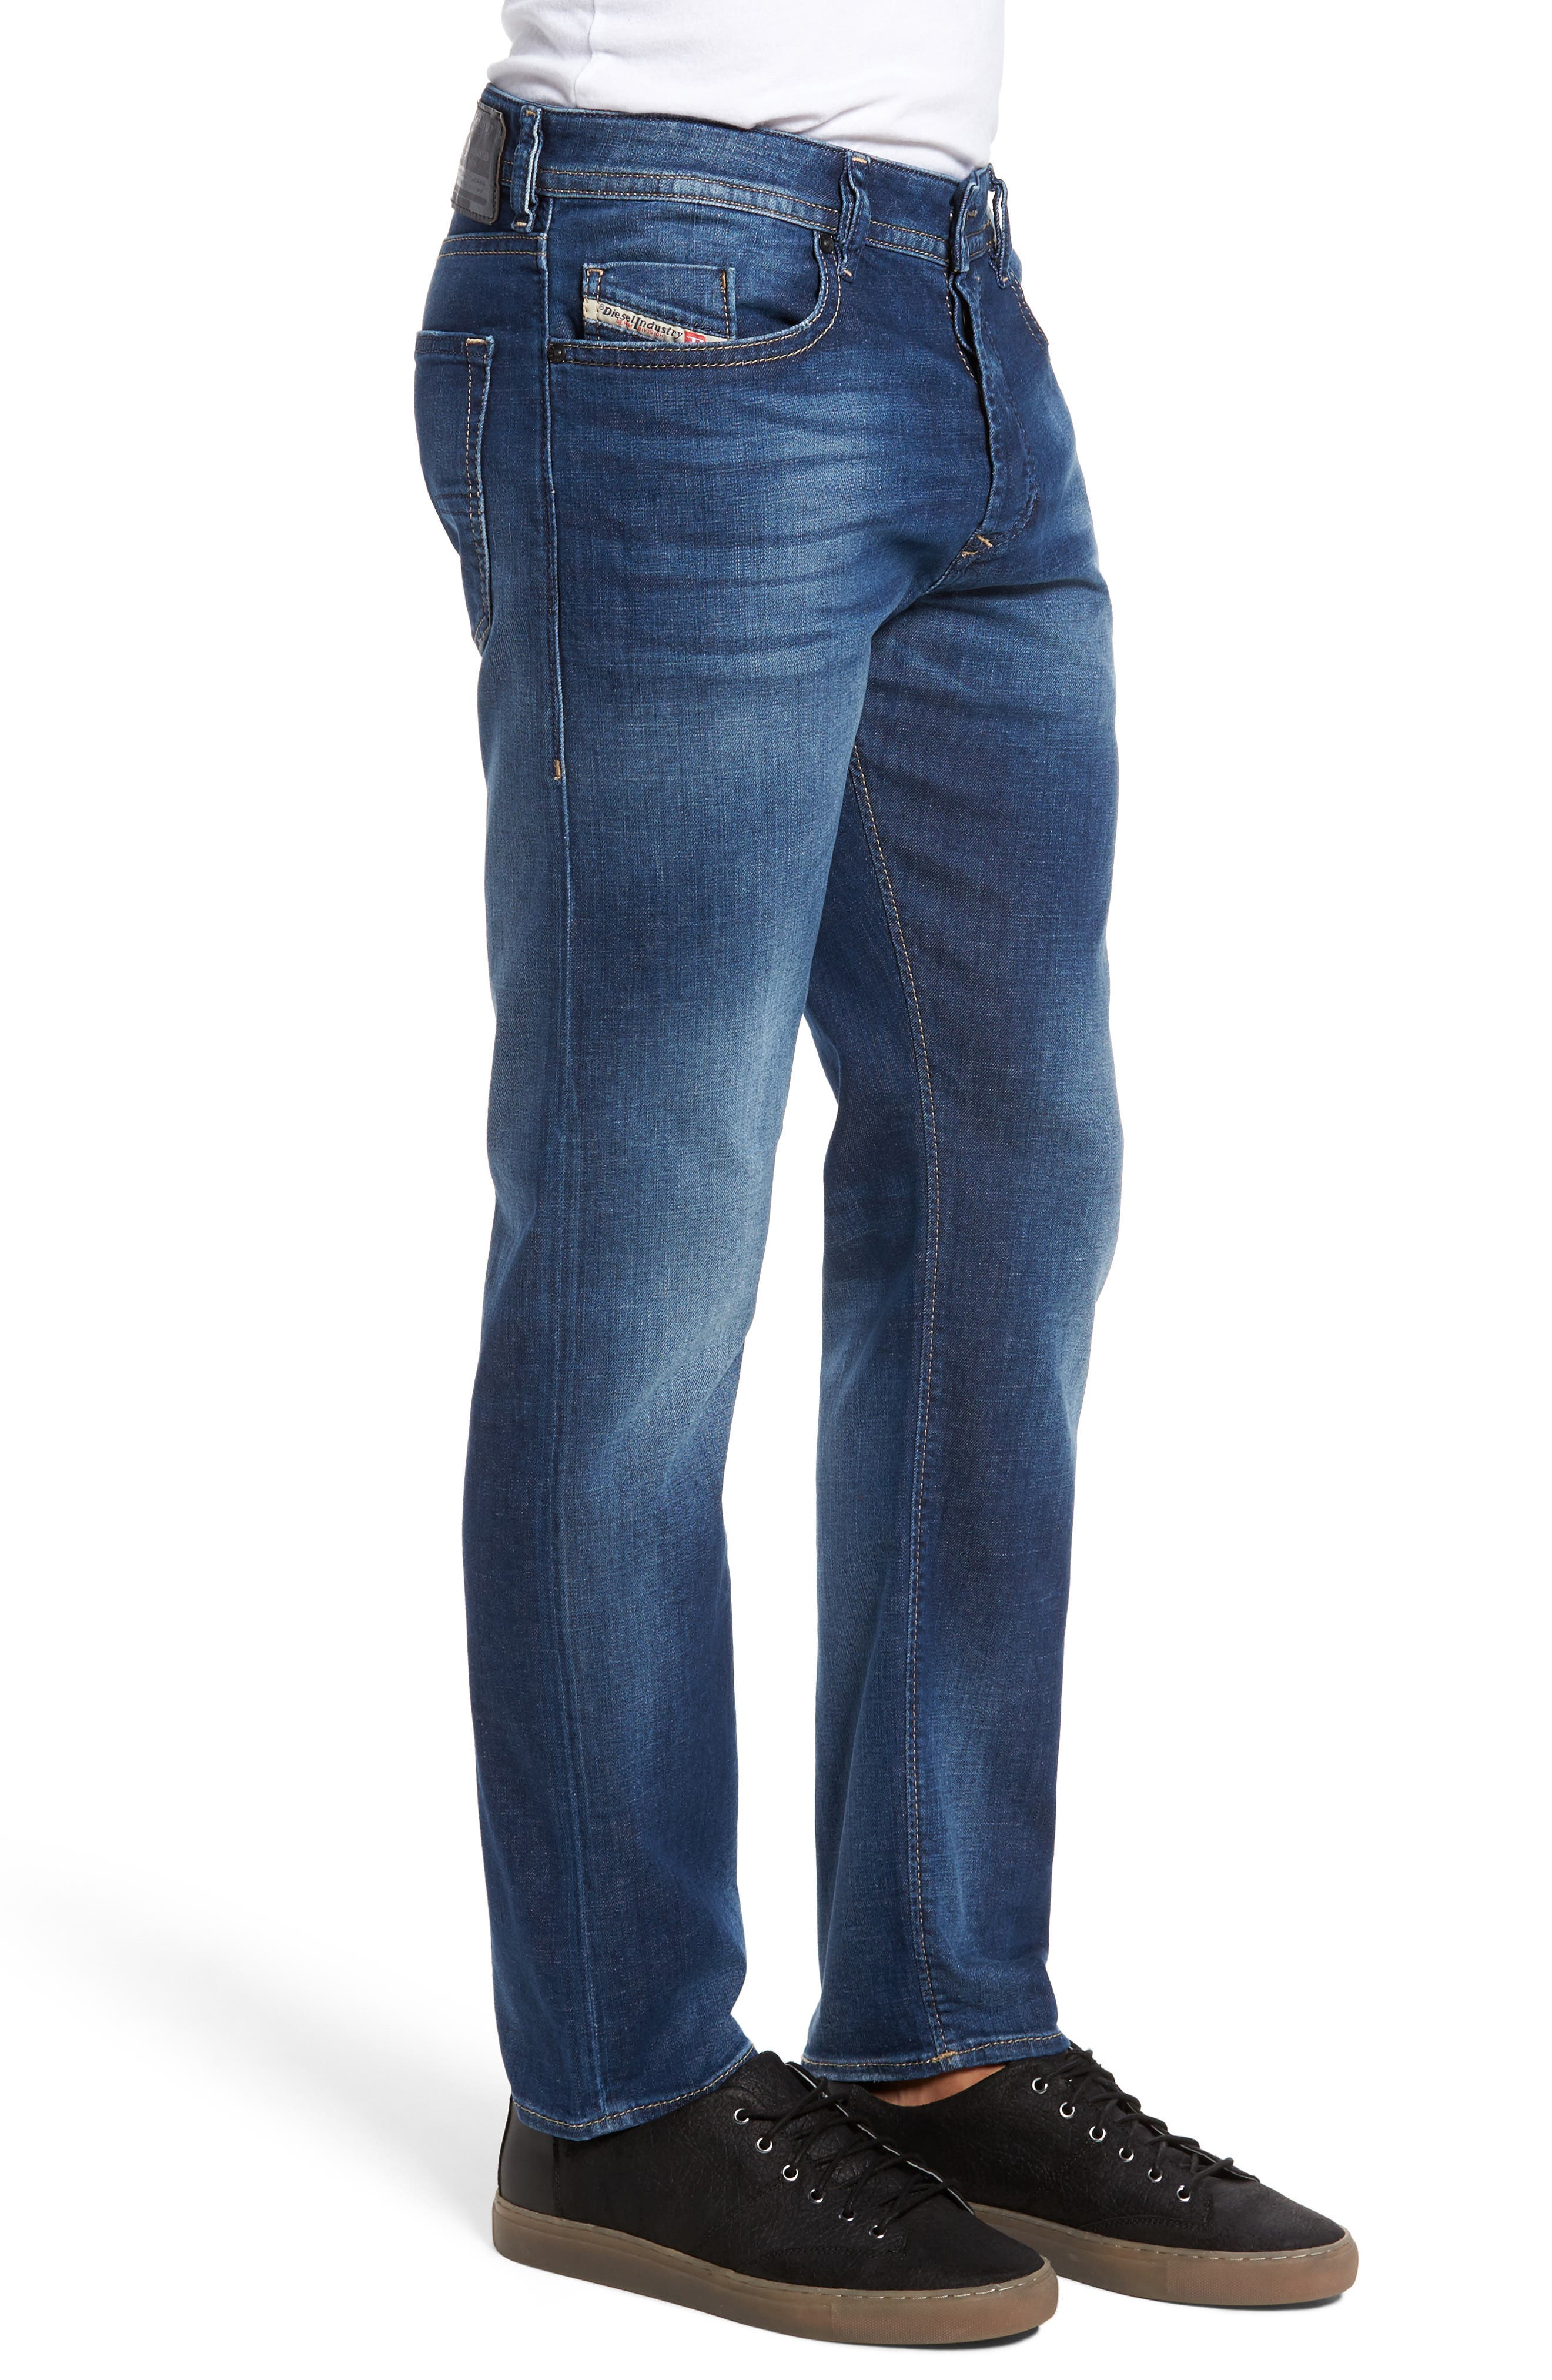 Buster Slim Straight Leg Jeans,                             Alternate thumbnail 3, color,                             400